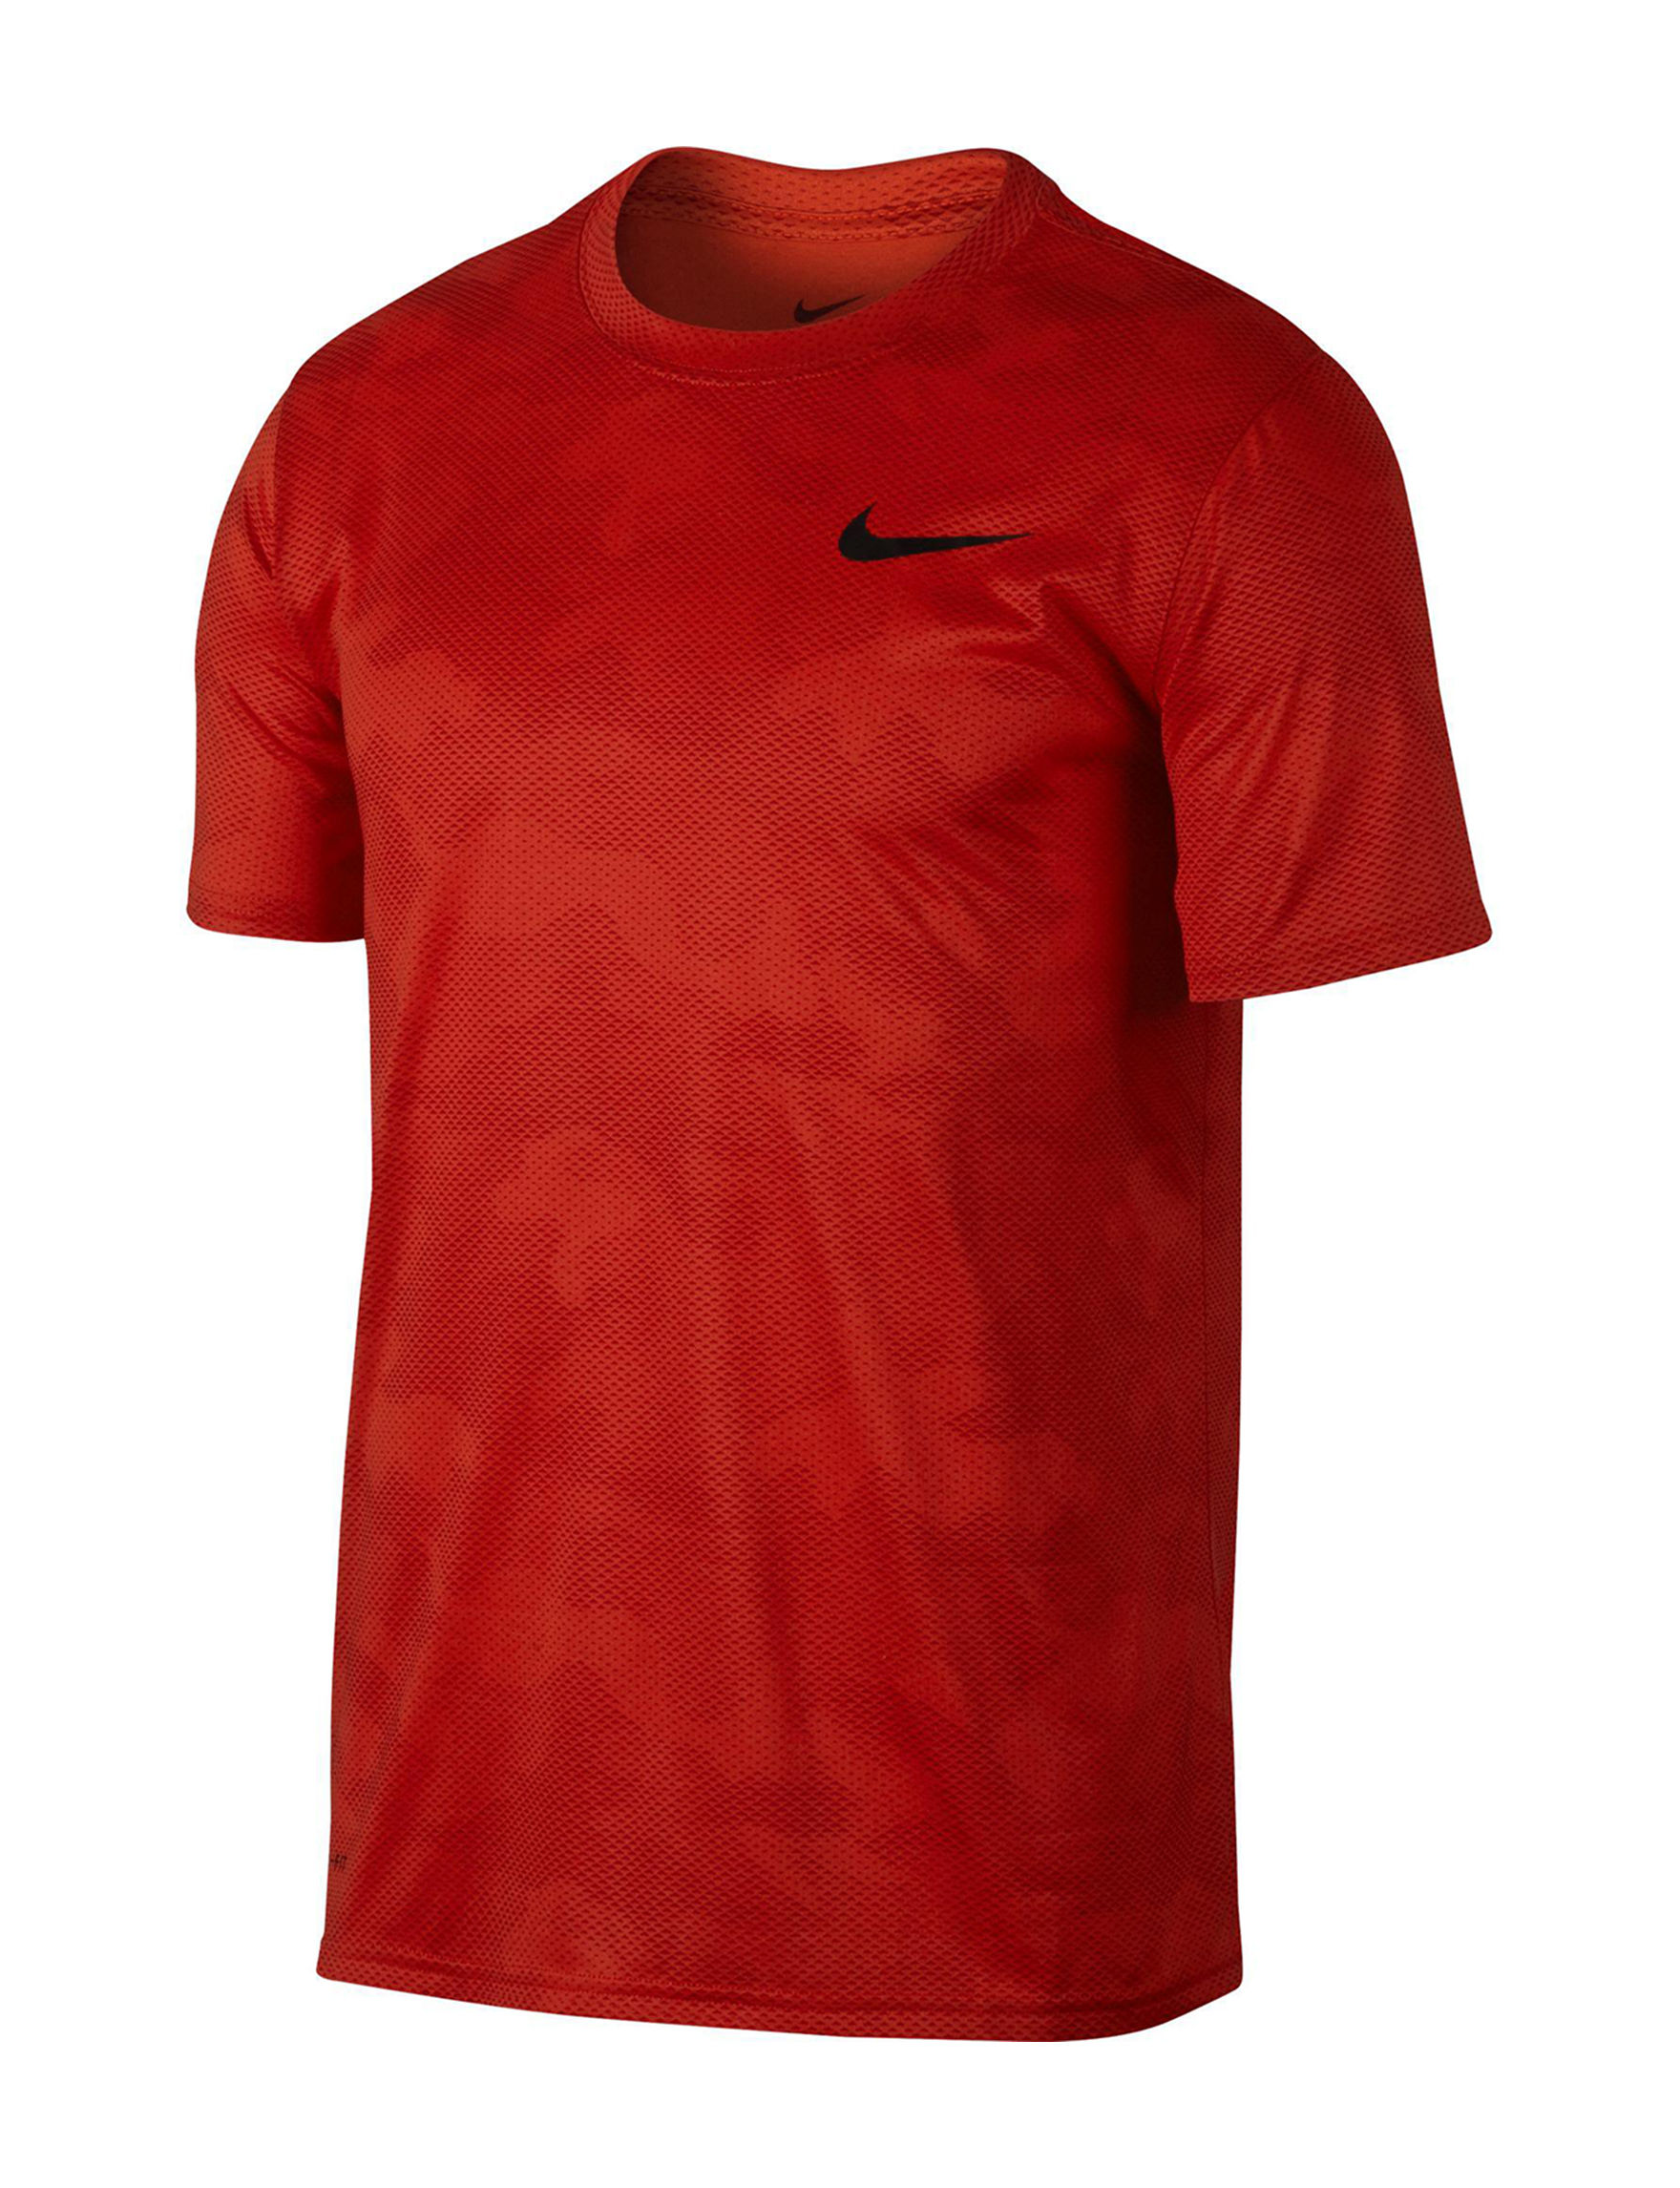 3fc9f11a62068a Nike Men's Dry Camo Print Legend Training T-shirt   Stage Stores